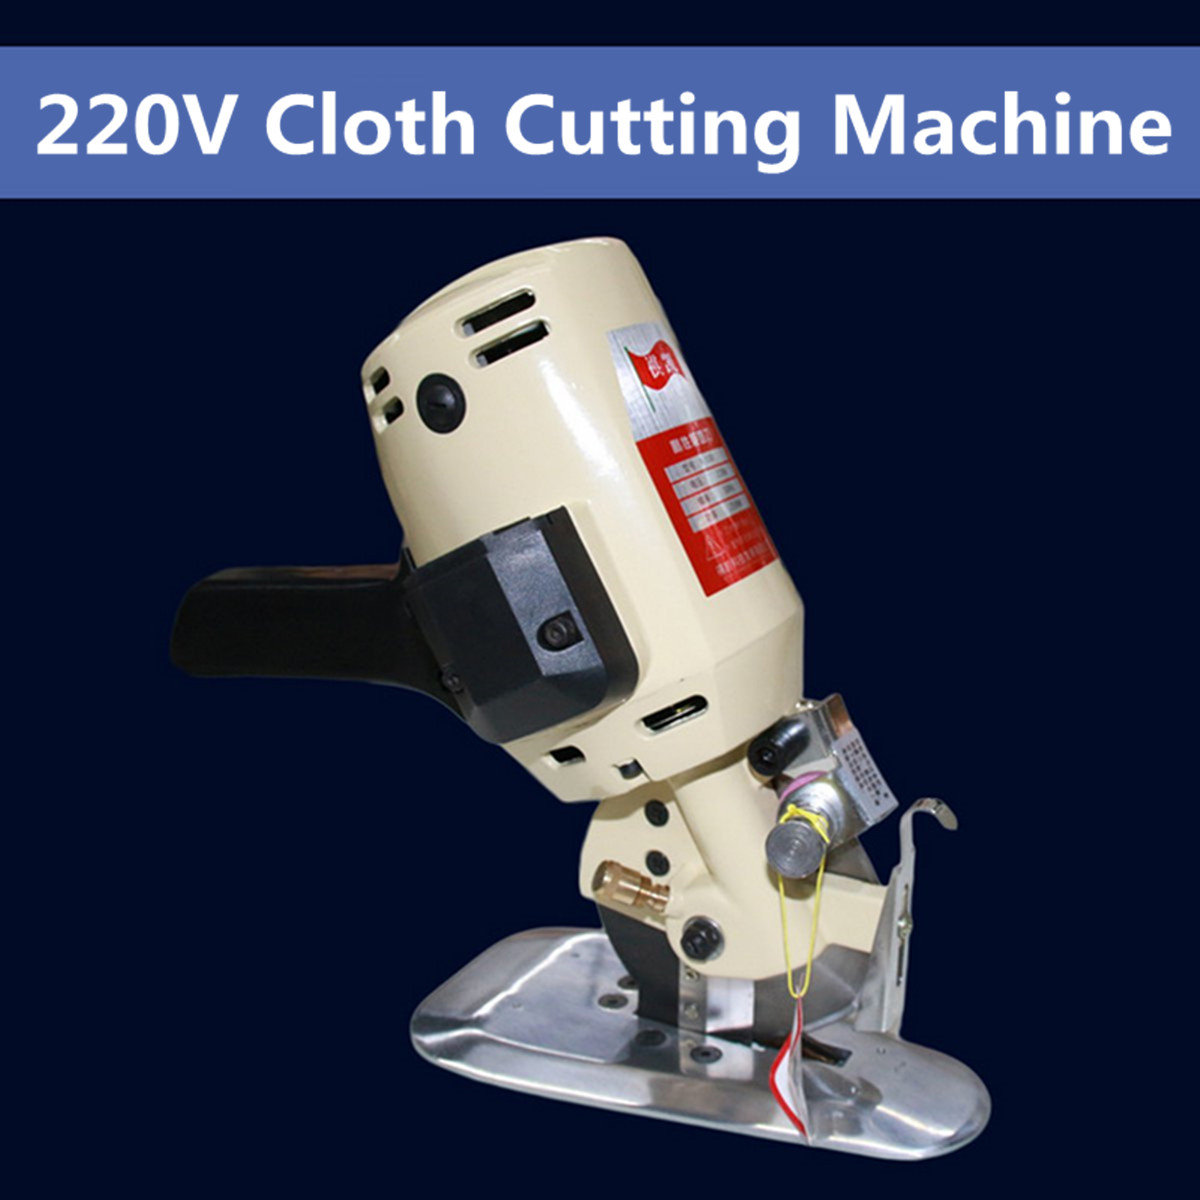 220V Electric Round Cutting Machine Circular Knife Electric Scissors Cloth Fabric Electric Cutter